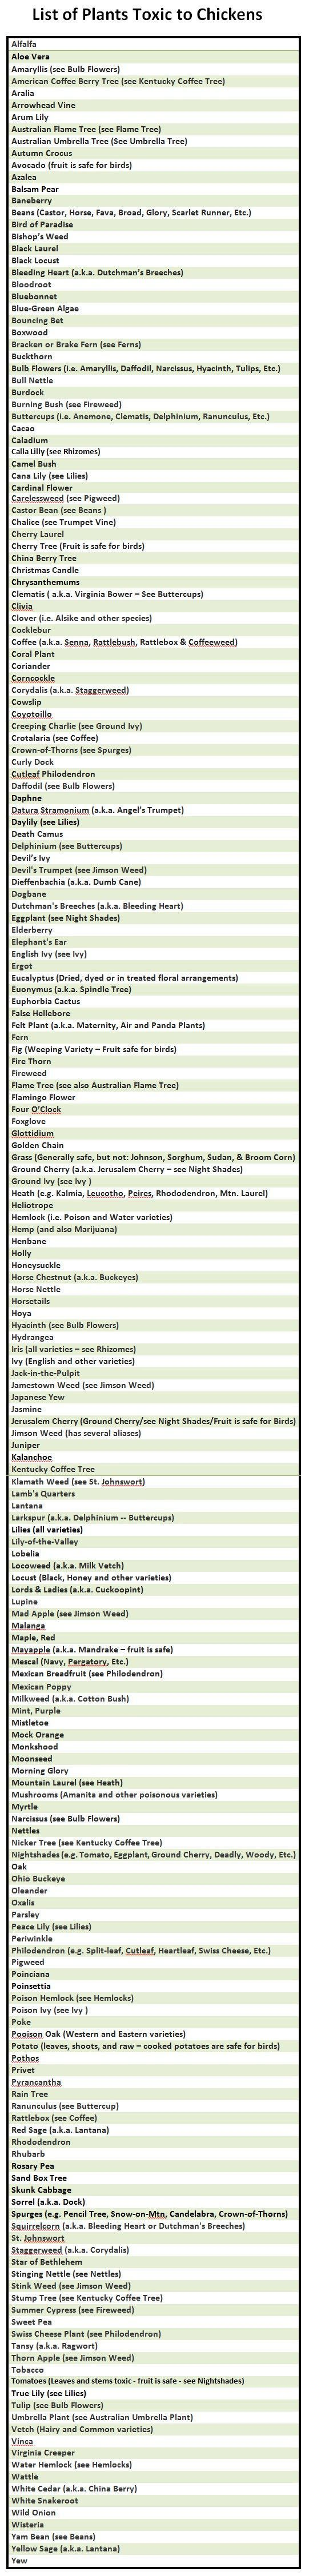 List Of Plants Toxic To Chickens | Urban Chicken Podcast